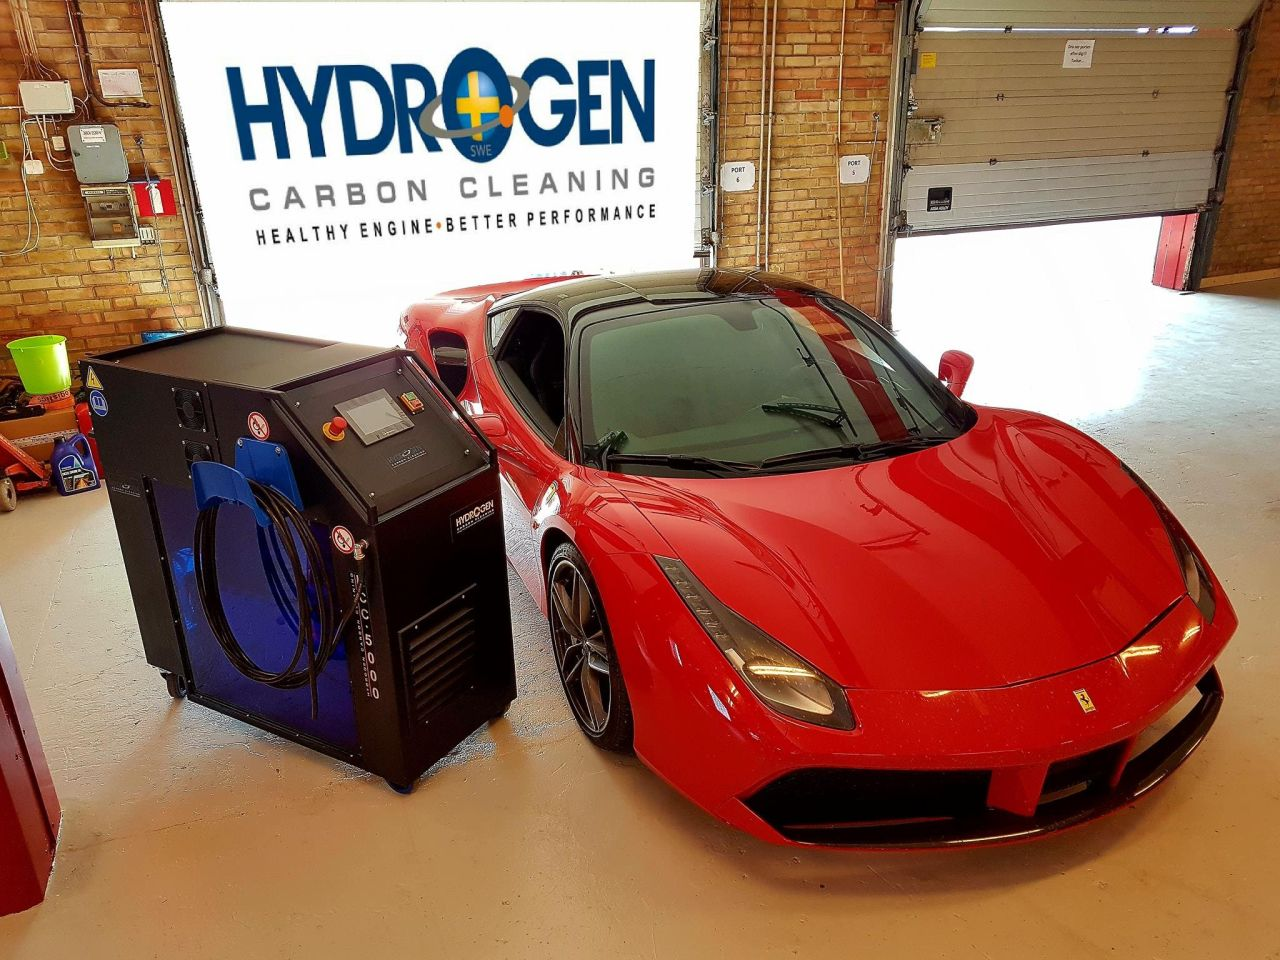 Hydrogen Technologies- A Successful Franchise Story